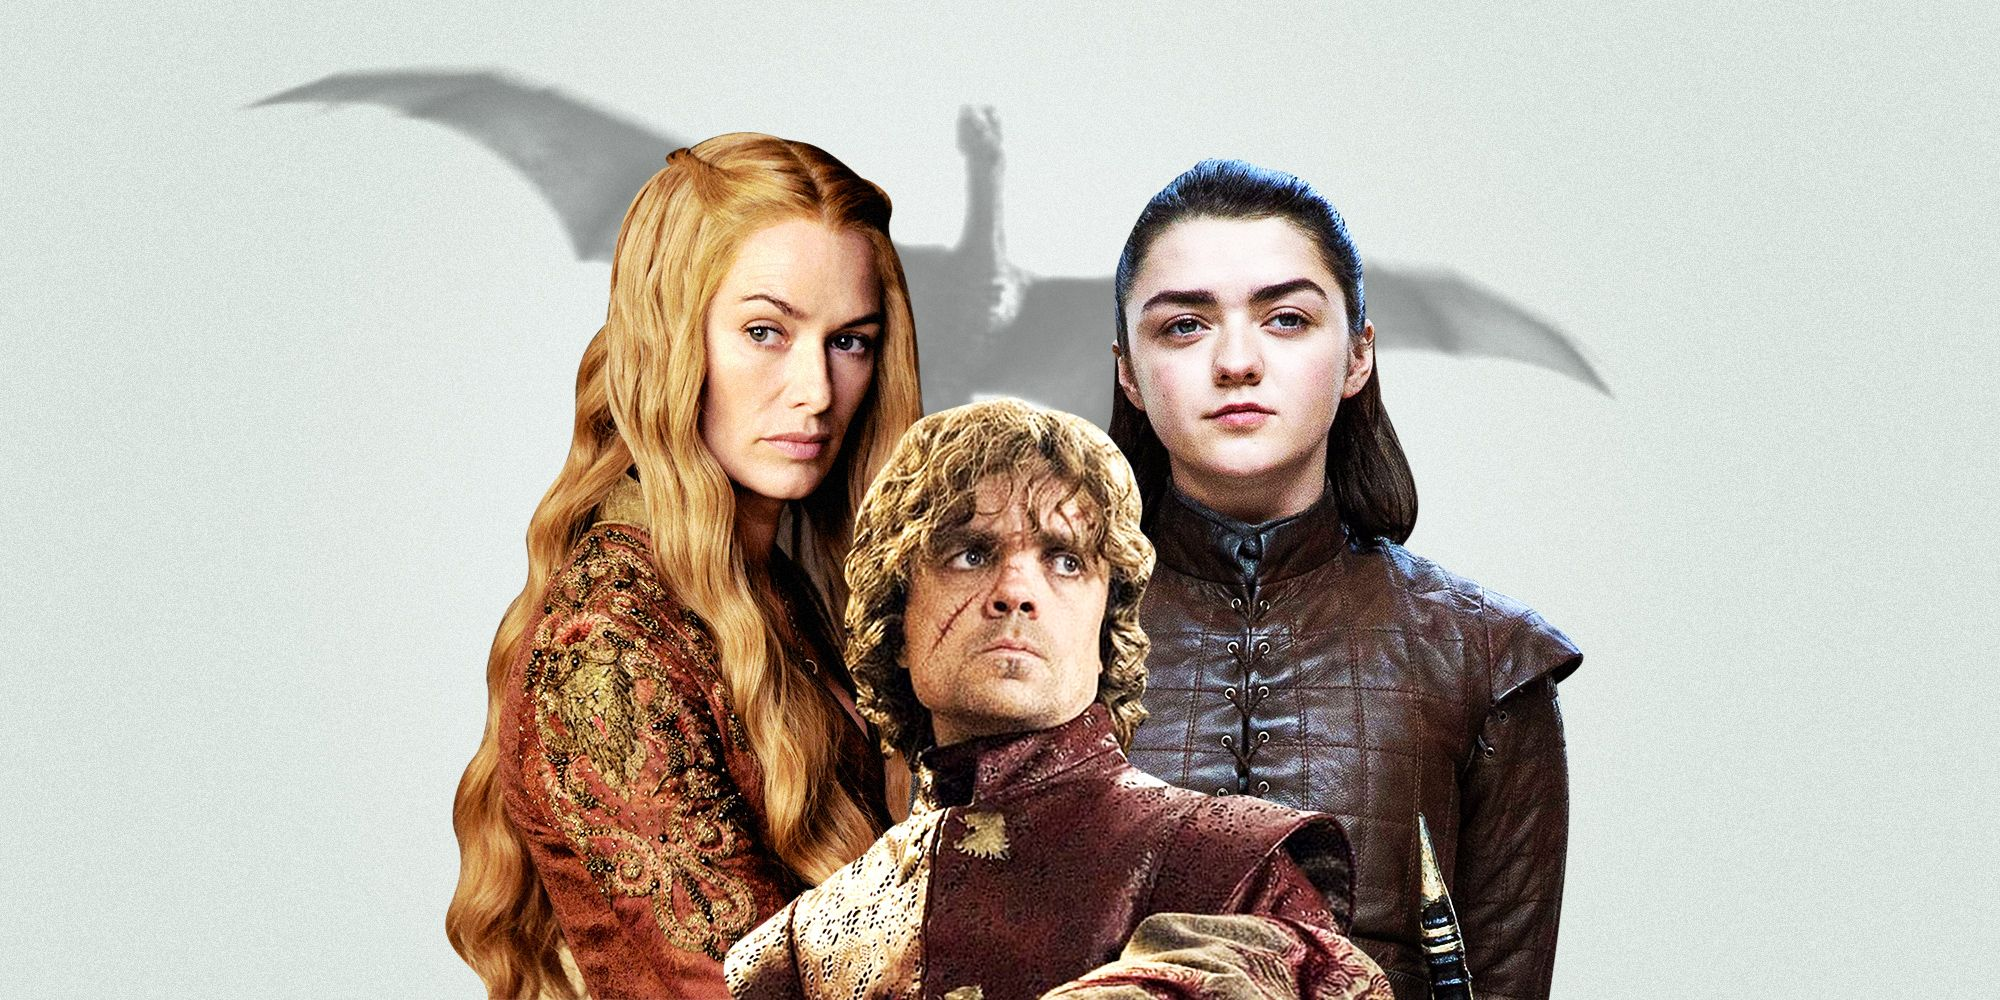 The 20 Best Game of Thrones Characters Ranked